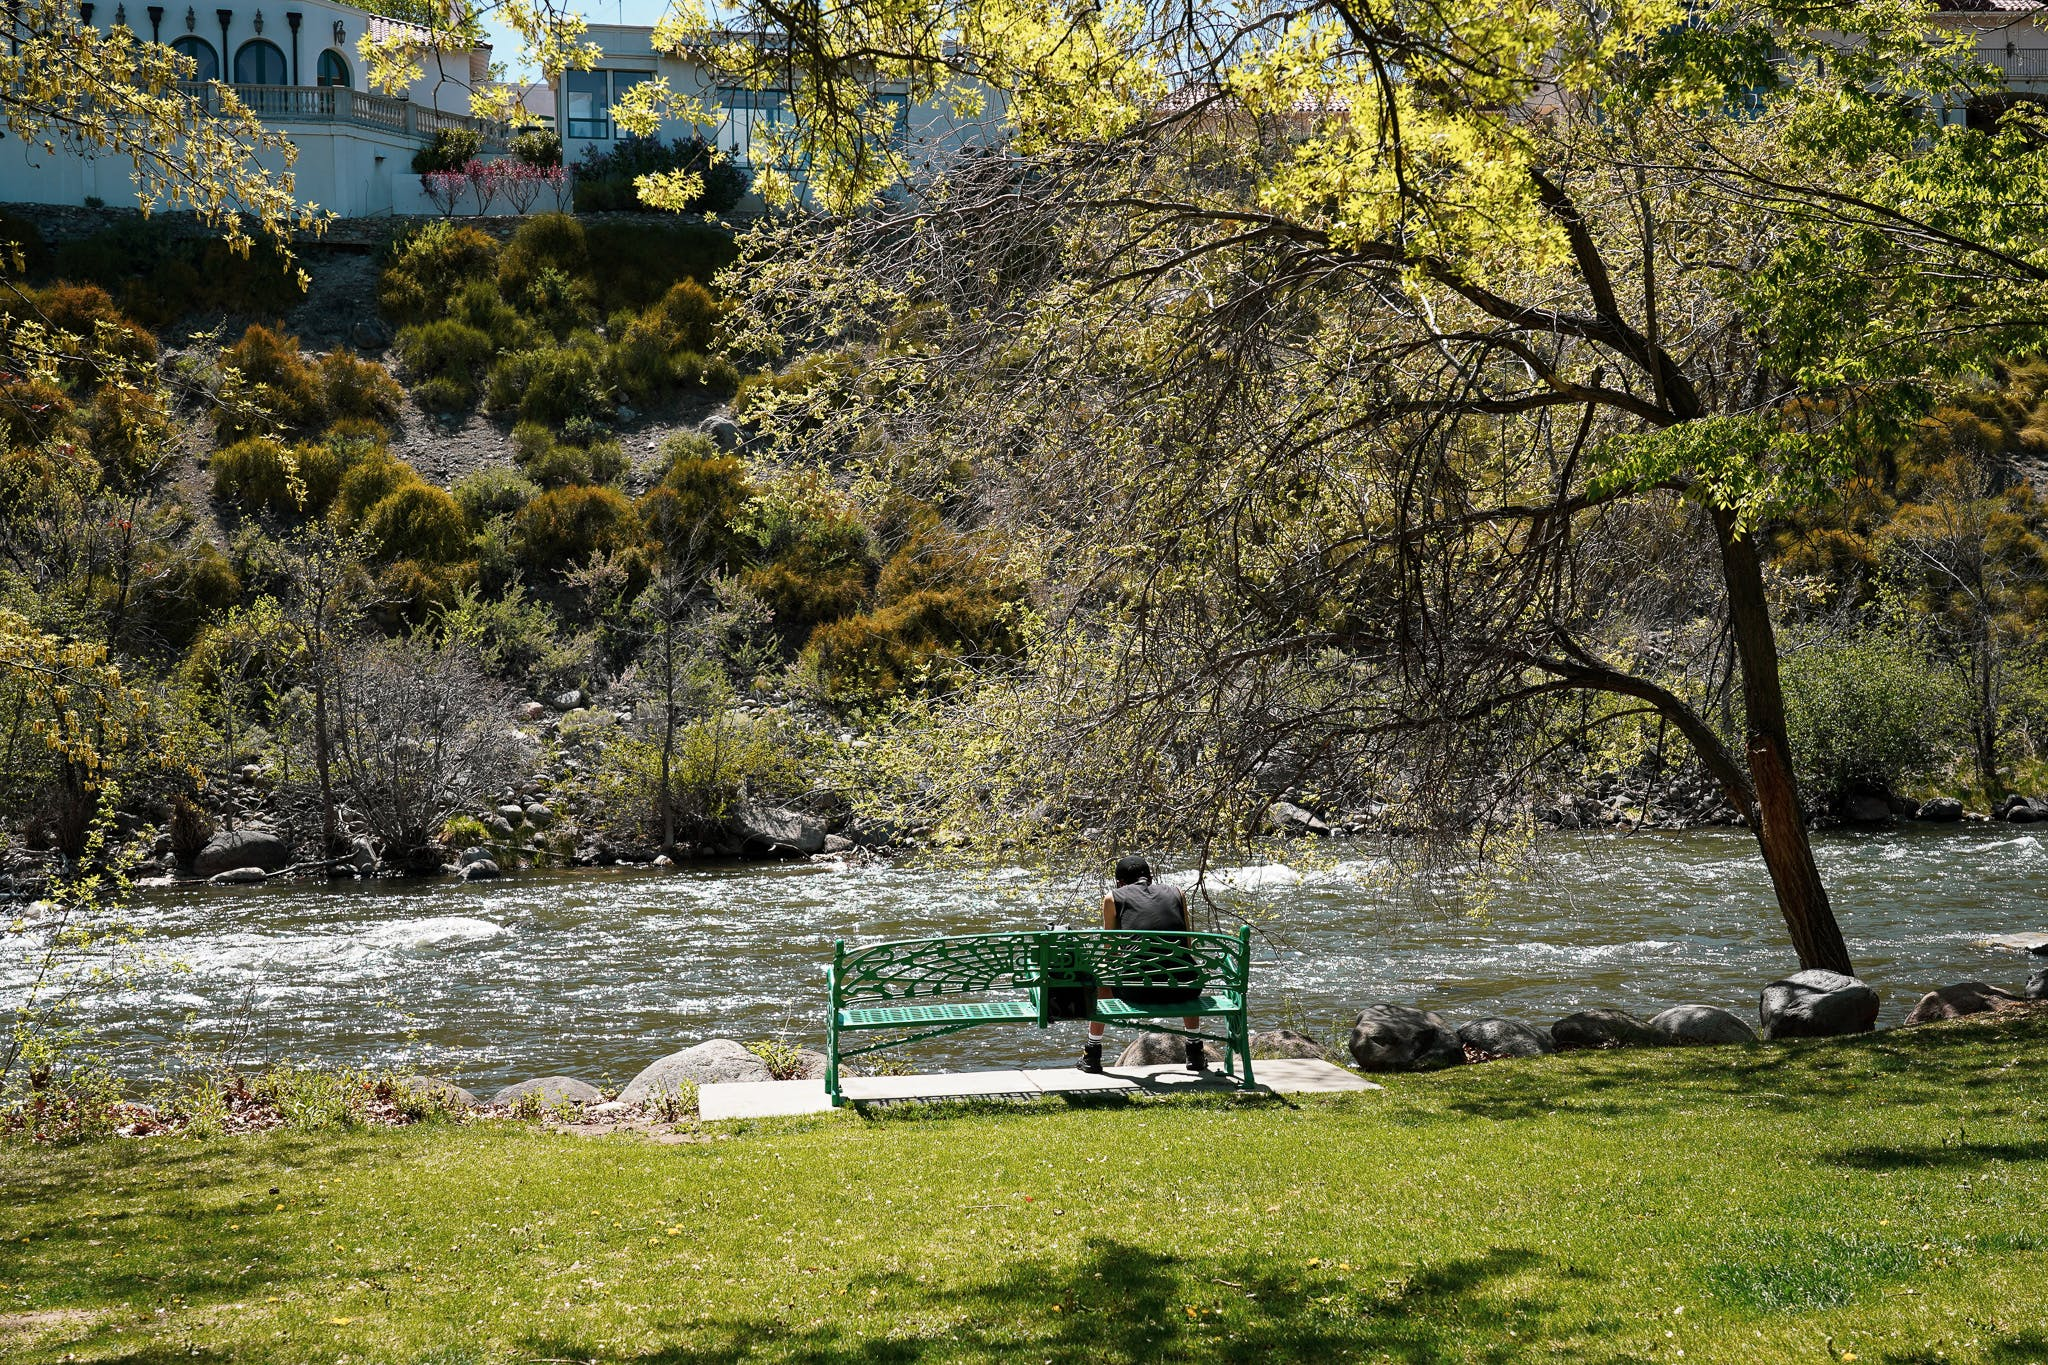 Truckee River in downtown River